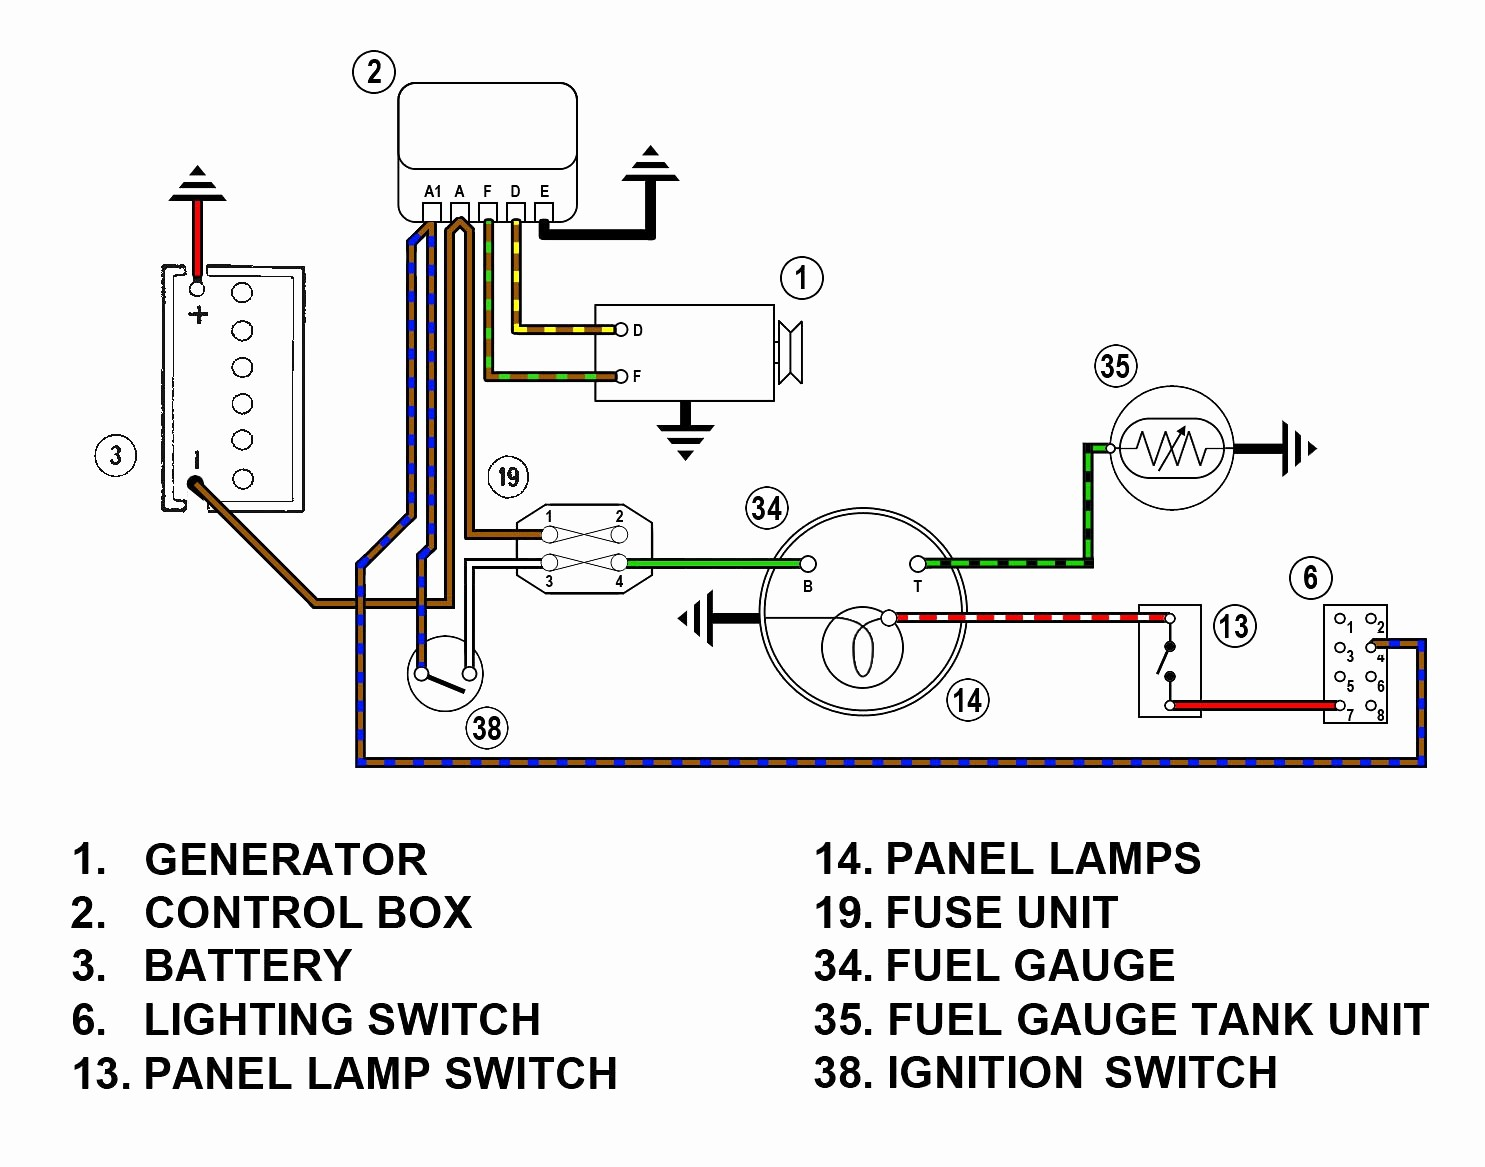 Diagram Of A Scully Ventalarm Trusted Wiring Plug Oil Tank Gauge Services U2022 Create Network Topology